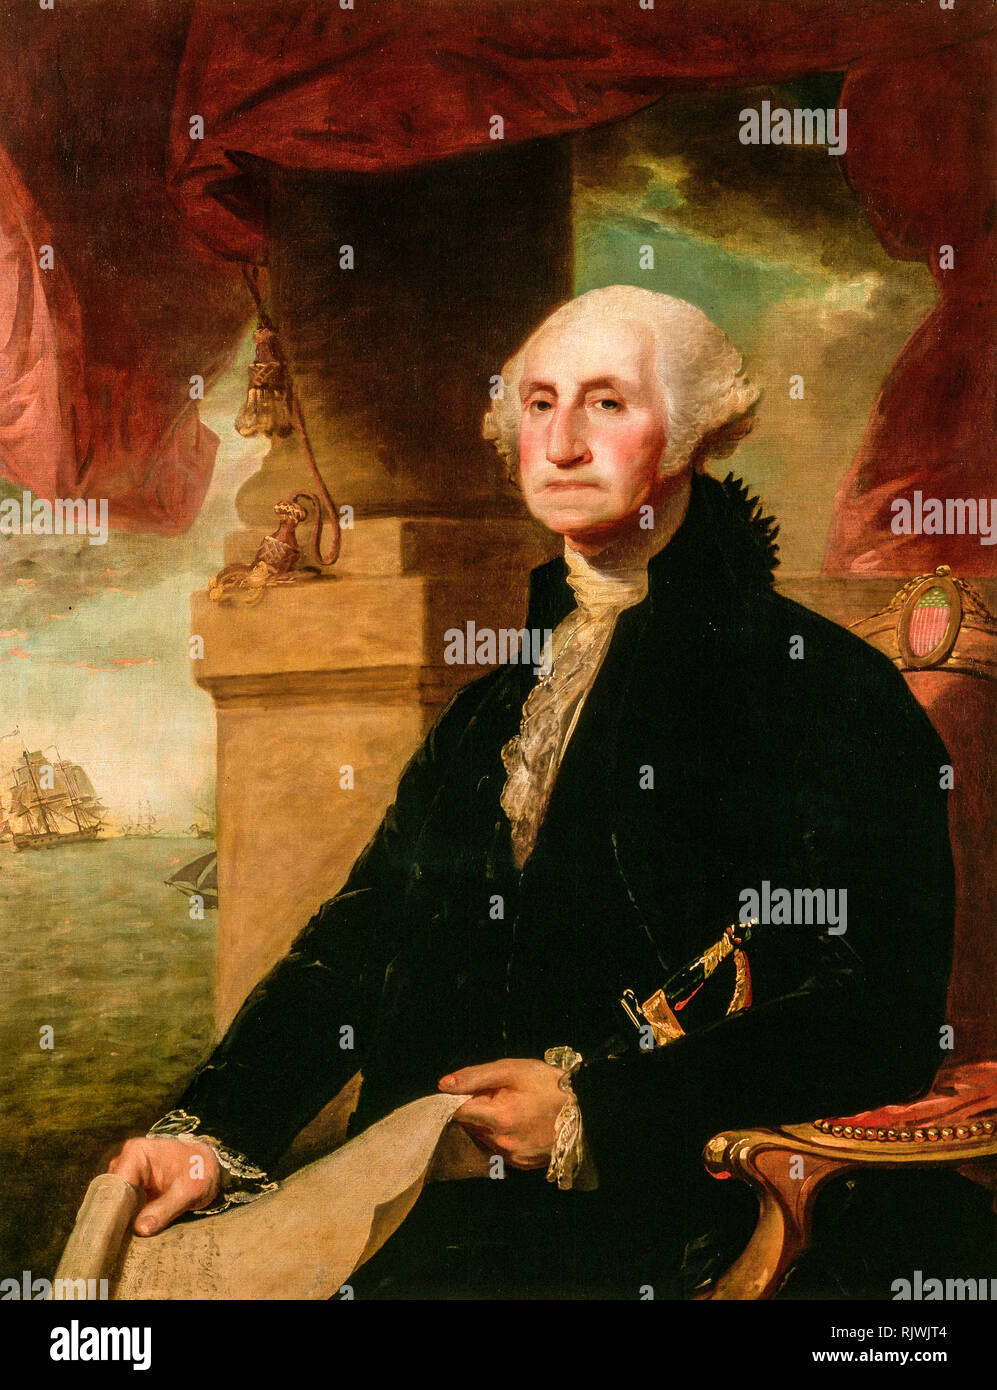 George Washington (The Constable-Hamilton portrait), painting by Gilbert Stuart, 1794 Stock Photo